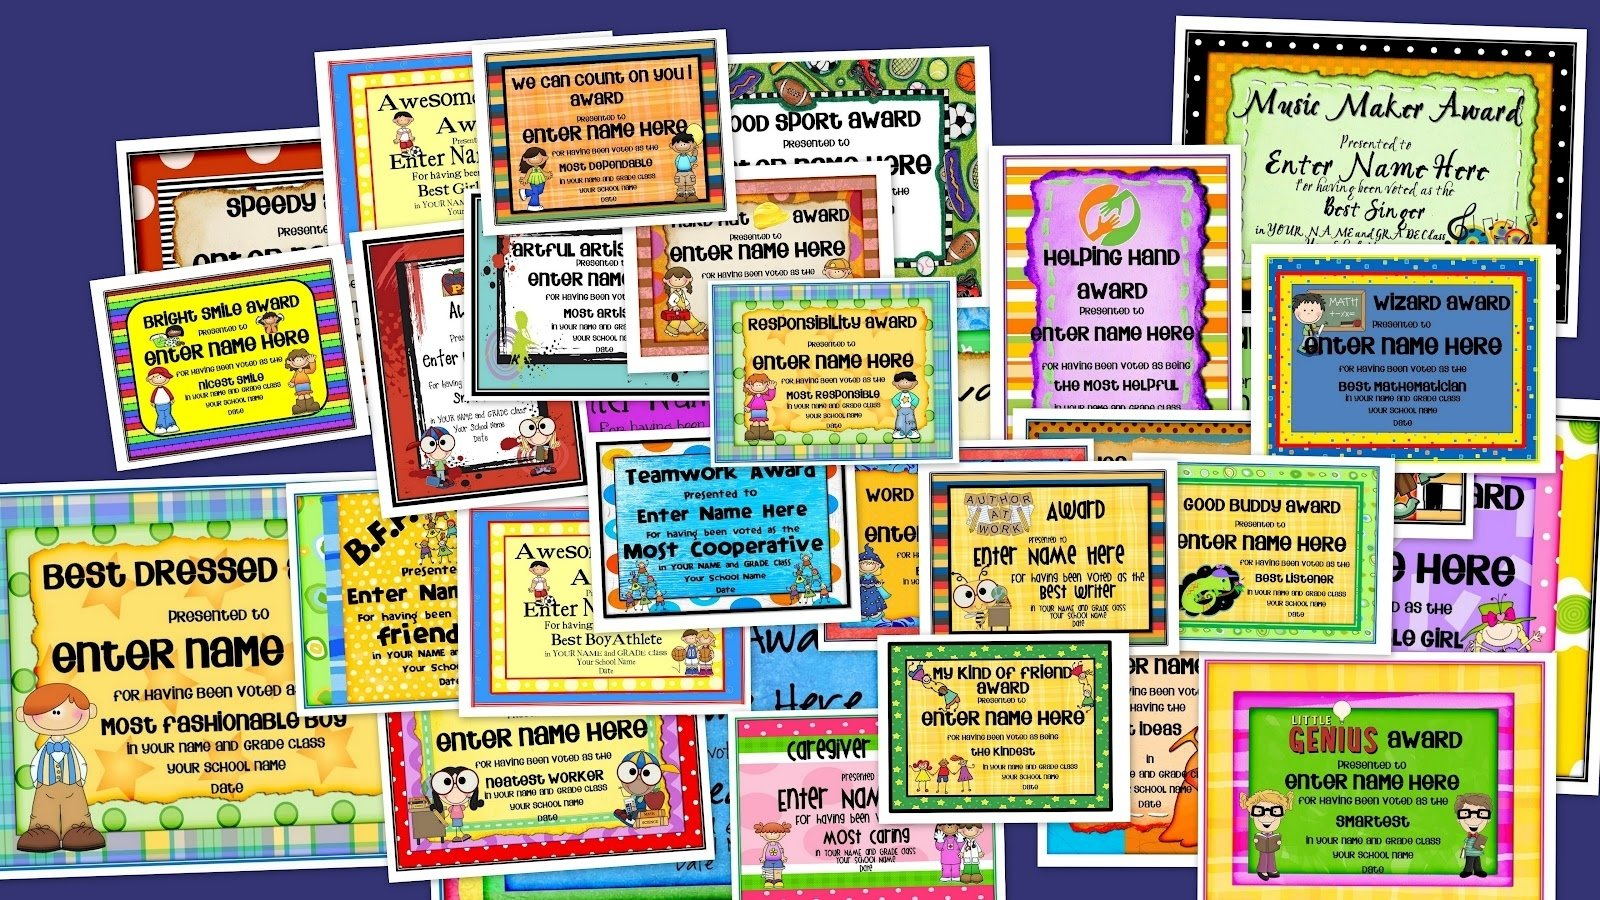 confessions of a teaching junkie: end-of-the-year award certificates